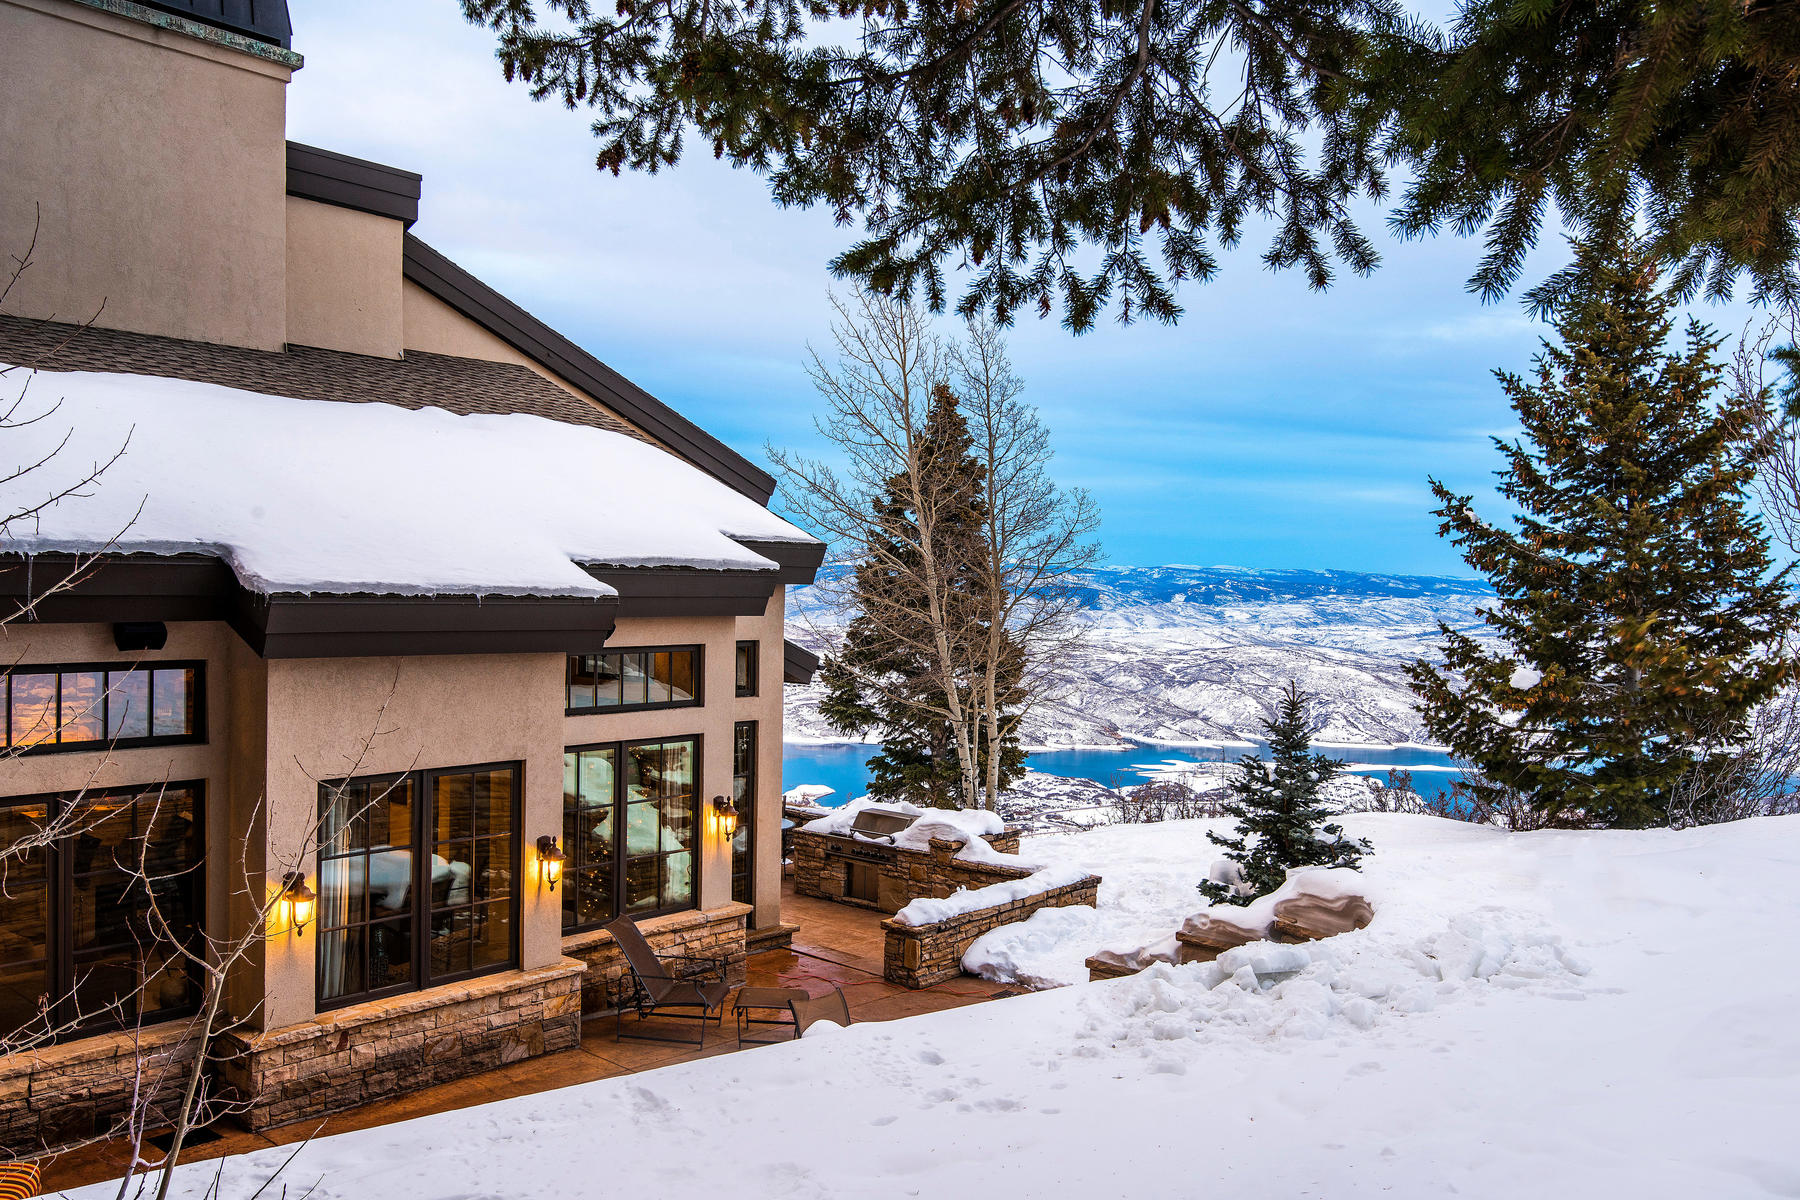 Single Family Homes for Active at Ski Slope, Lake Views, and Direct Ski Access in Deer Valley 8030 Bald Eagle Dr Park City, Utah 84060 United States